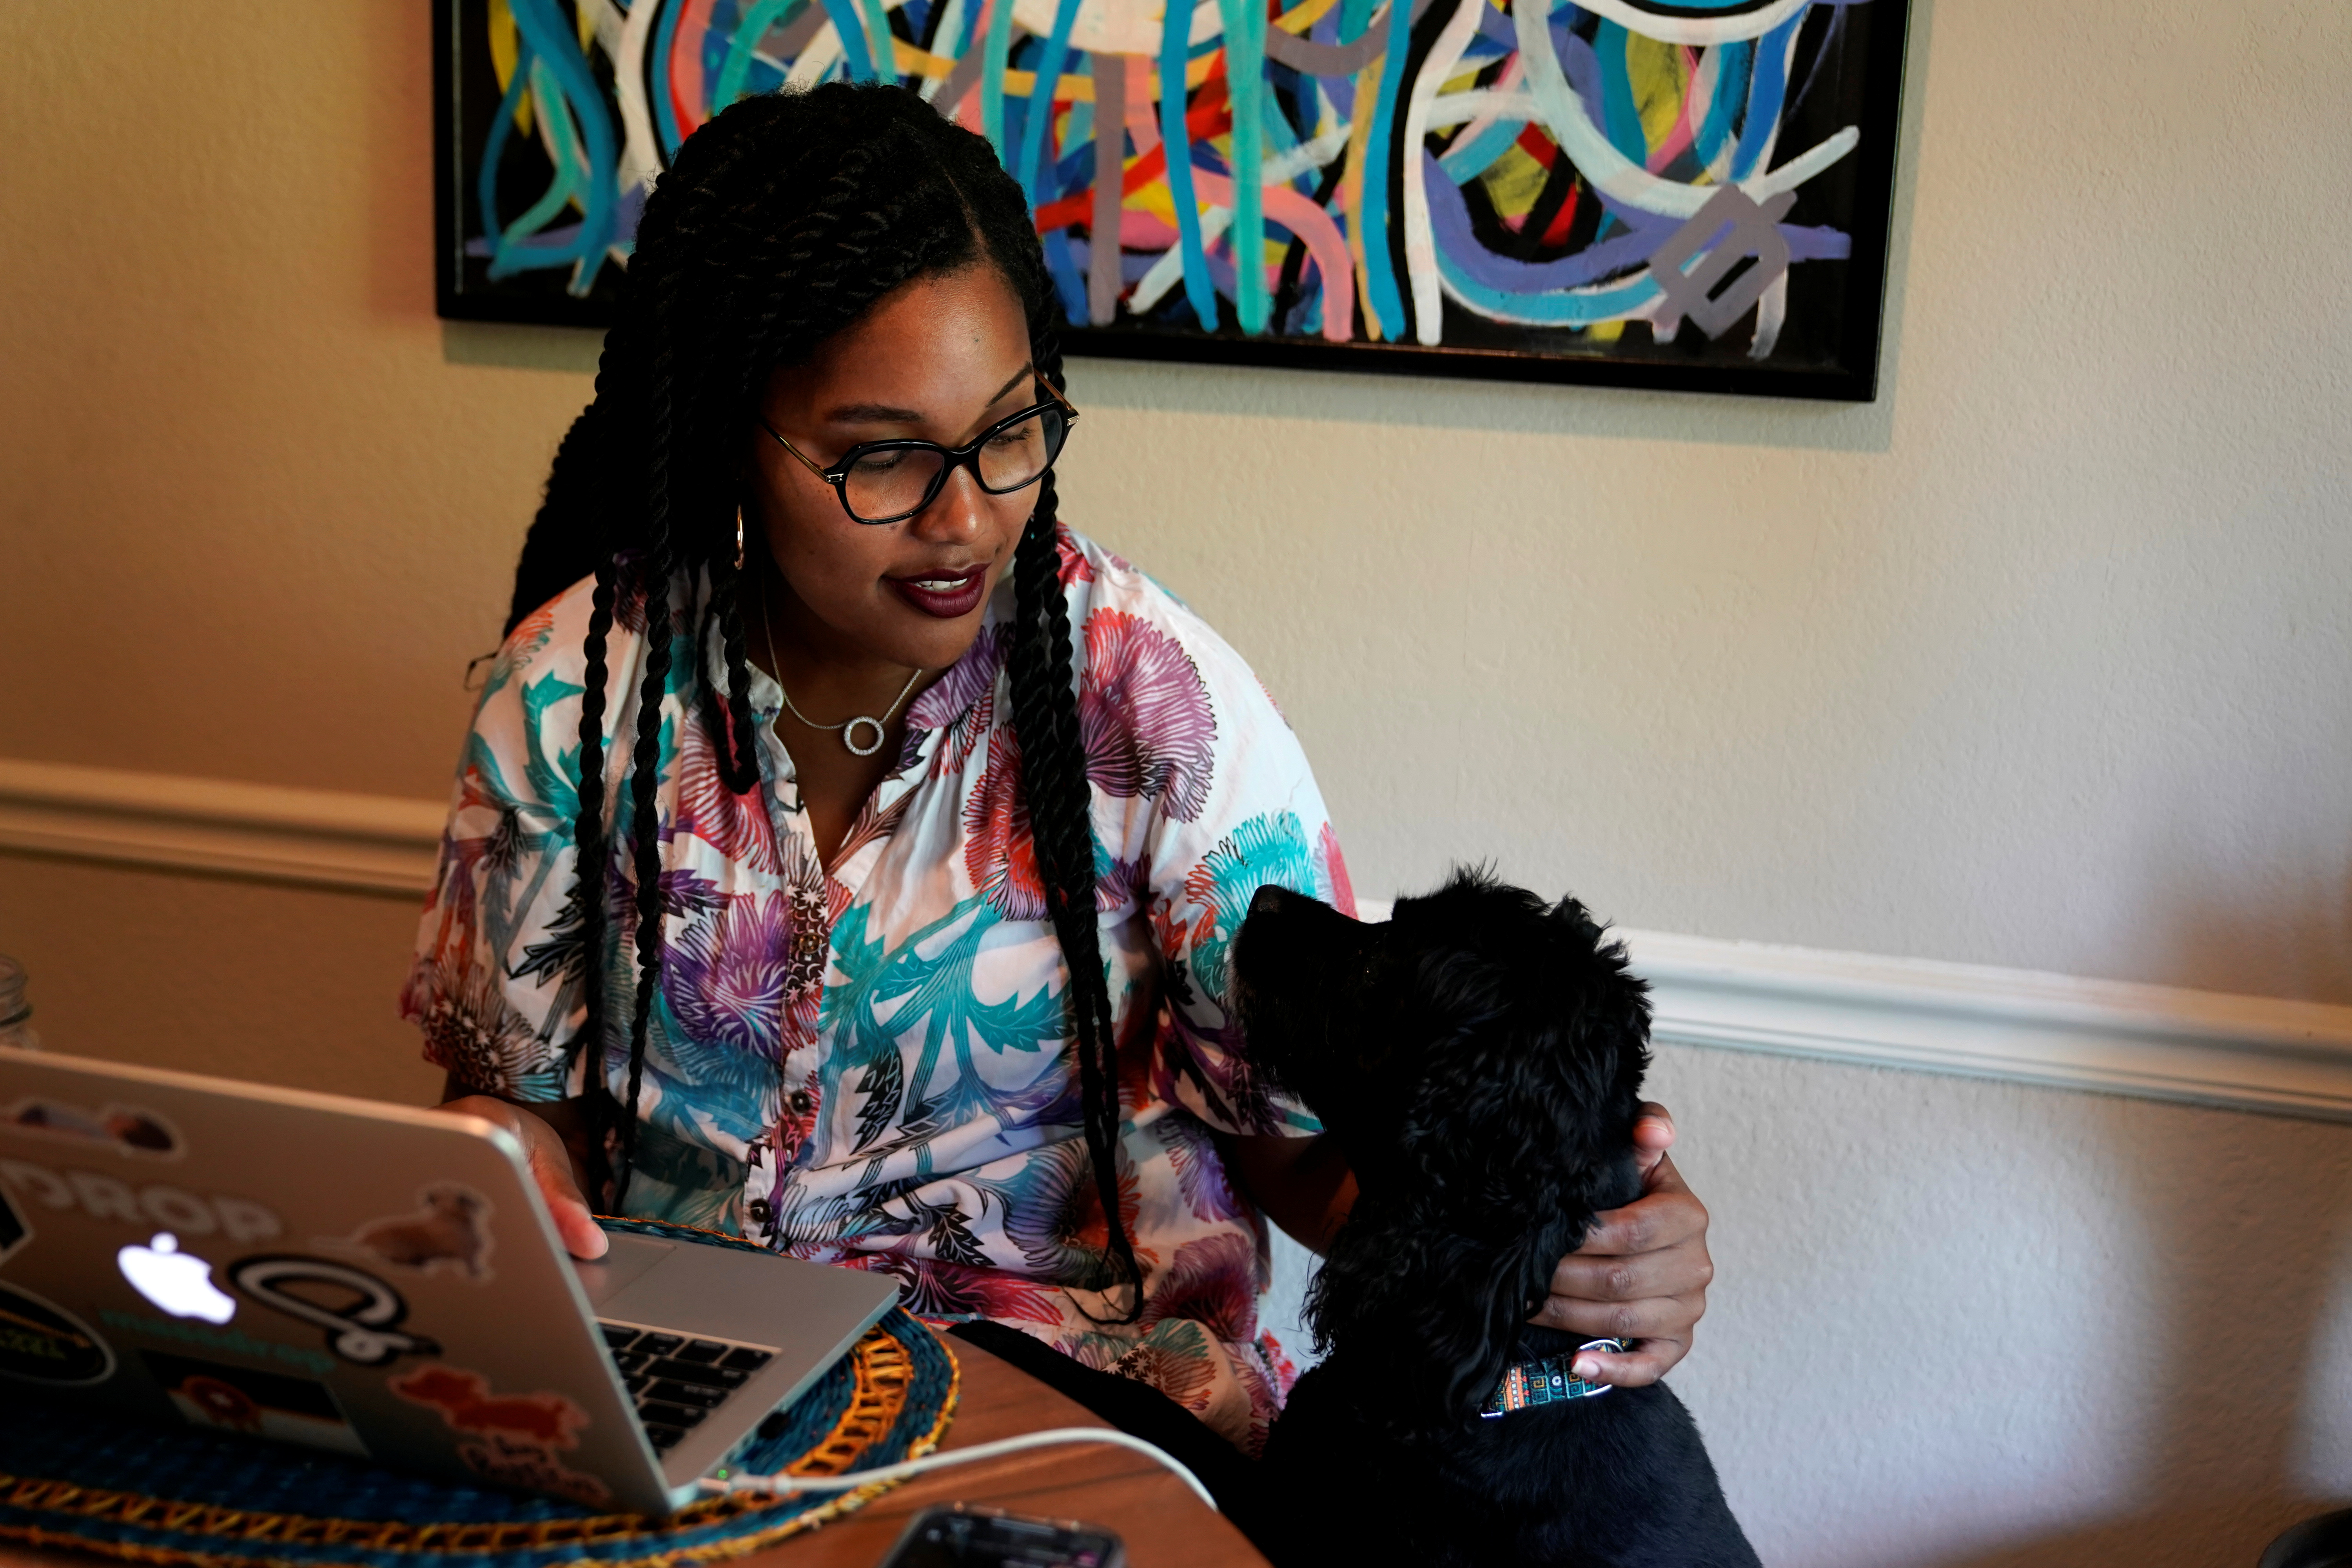 Jaleesa Garland, a marketing manager at an e-commerce startup who relocated from the Bay Area at the start of the COVID-19 pandemic, pets her dog Bo while working in her apartment in Tulsa, Oklahoma, U.S., July 9, 2021. REUTERS/Nick Oxford